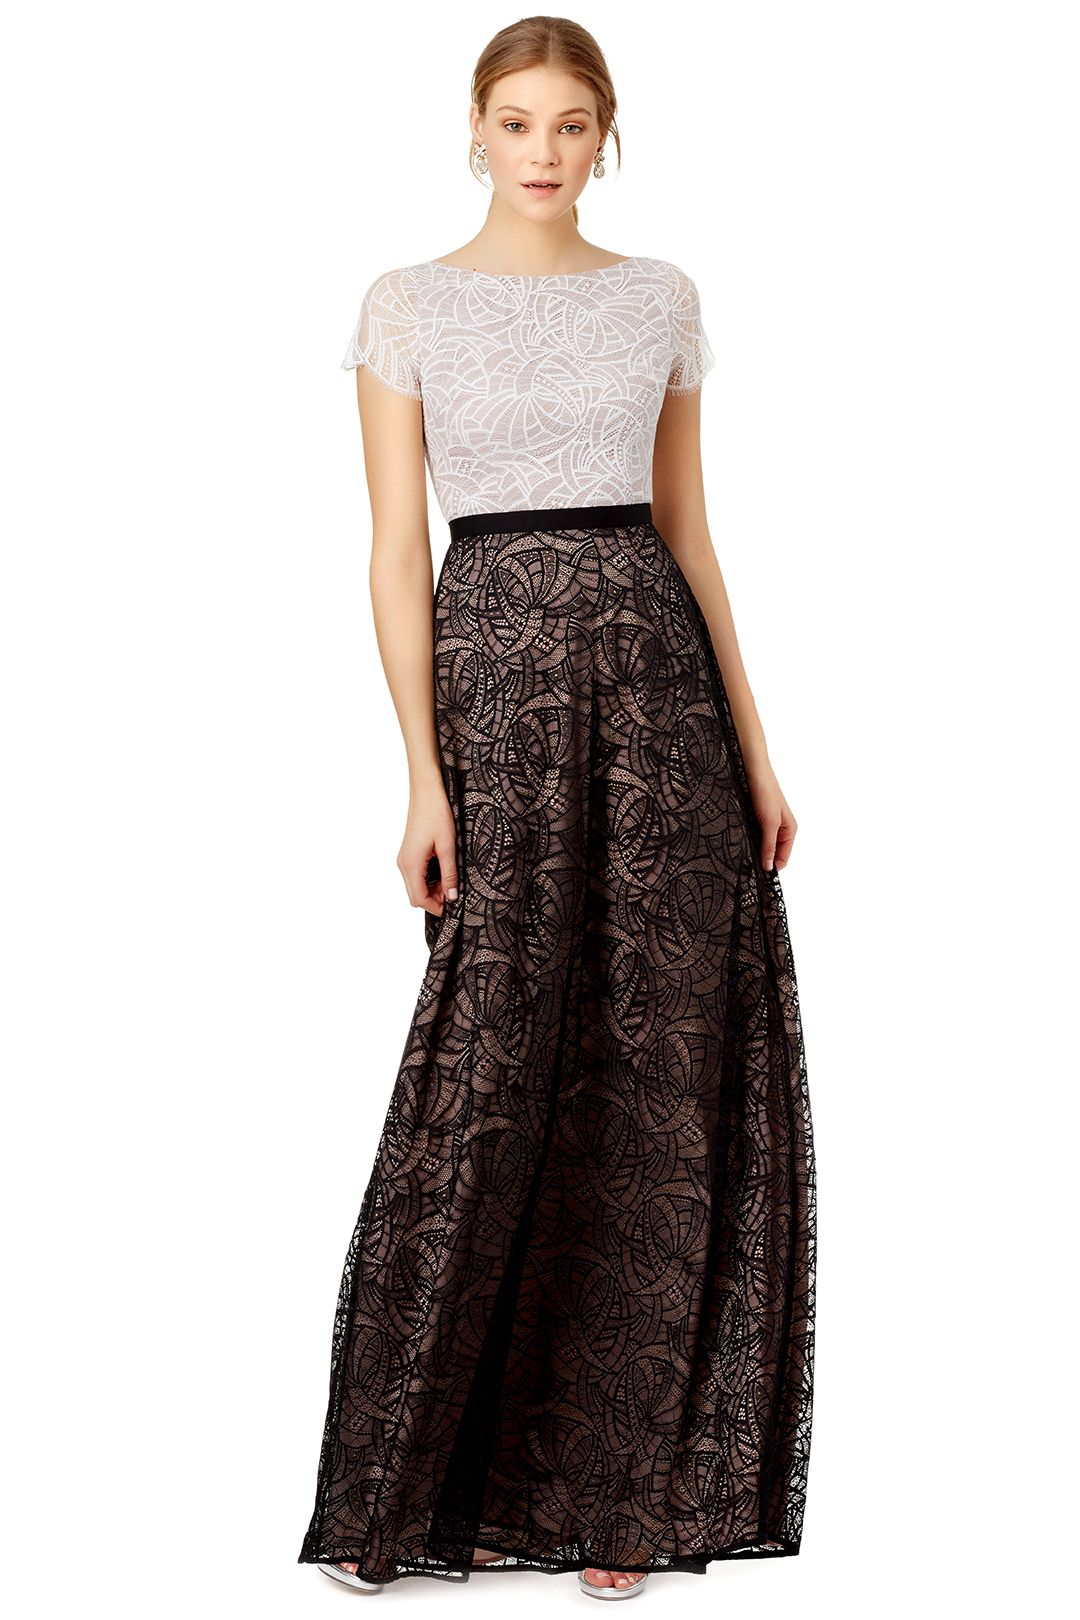 Isabella gown by nha khanh lace pinterest gowns red carpet